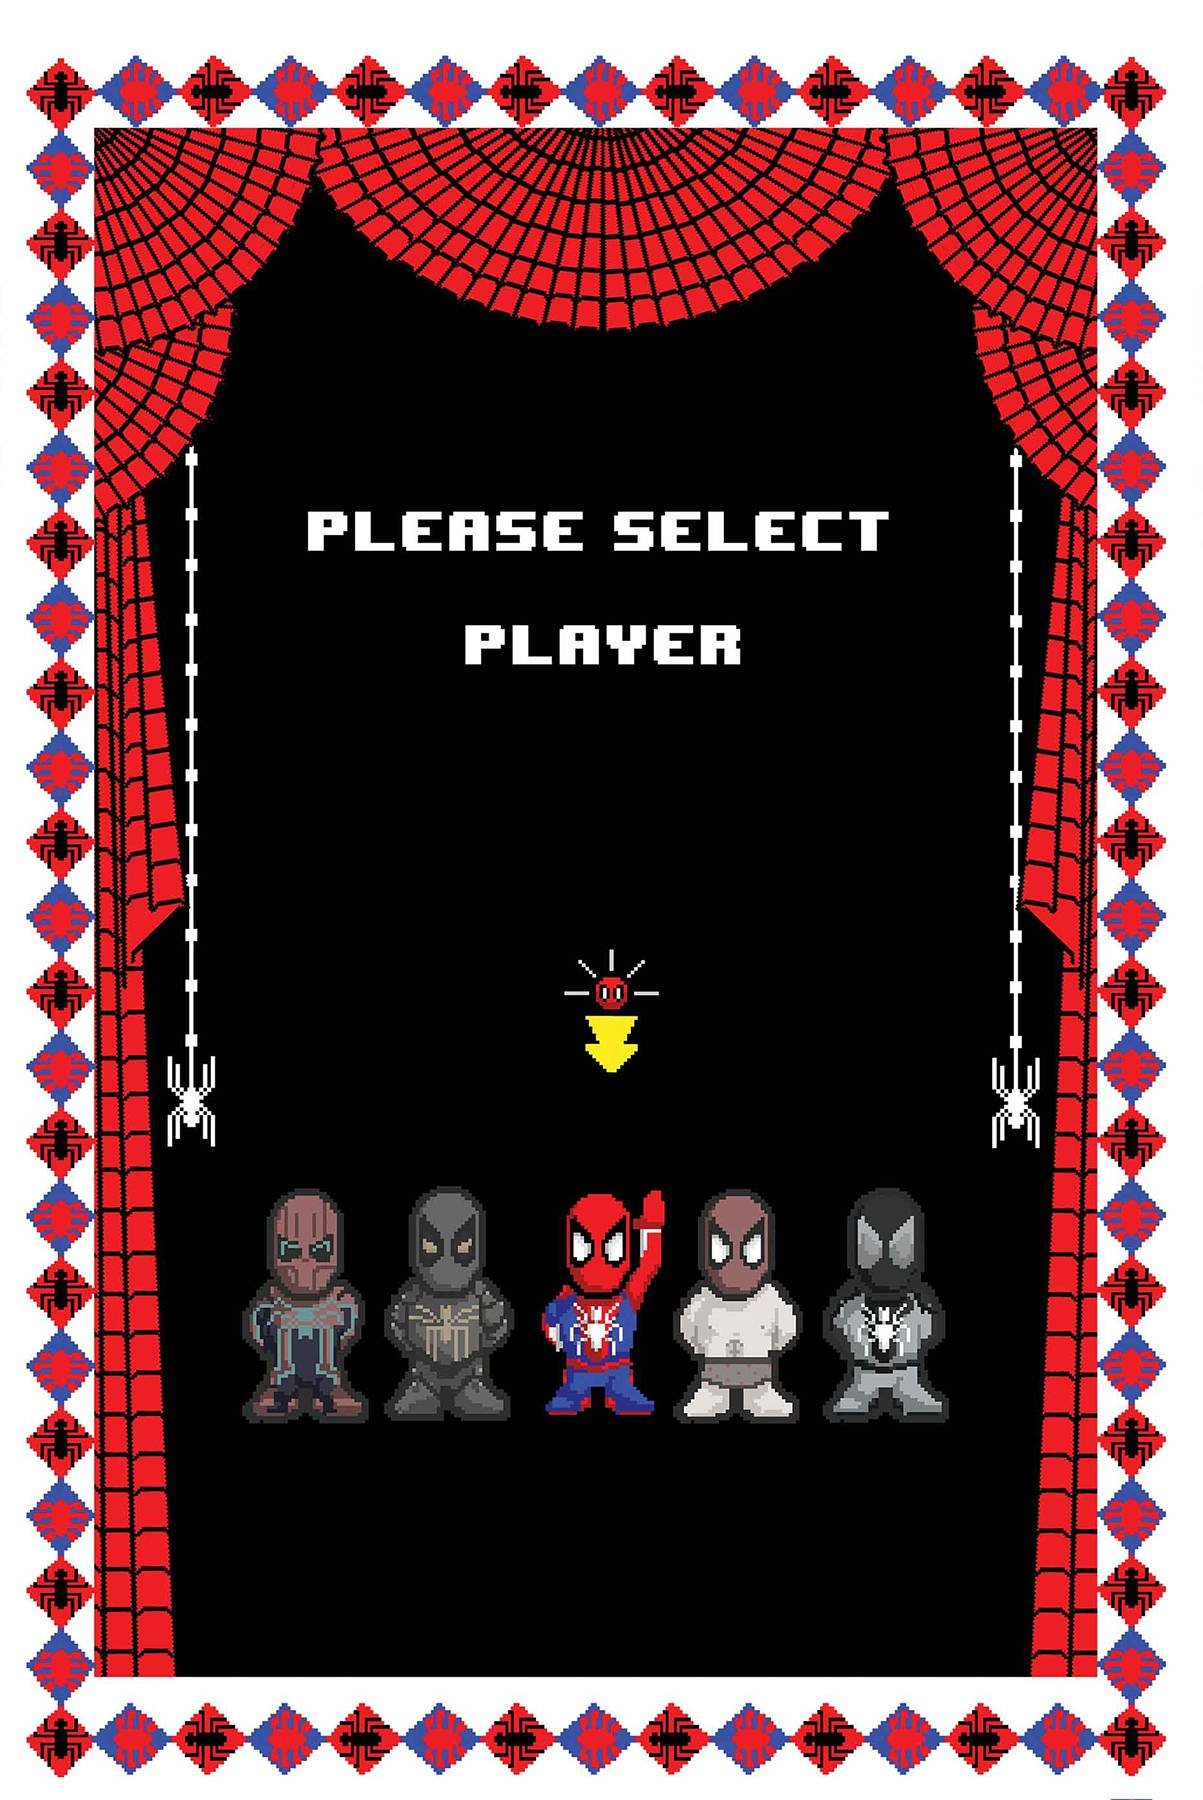 SPIDER-MAN CITY AT WAR 5 of 6 WAITE 8-BIT VAR.jpg